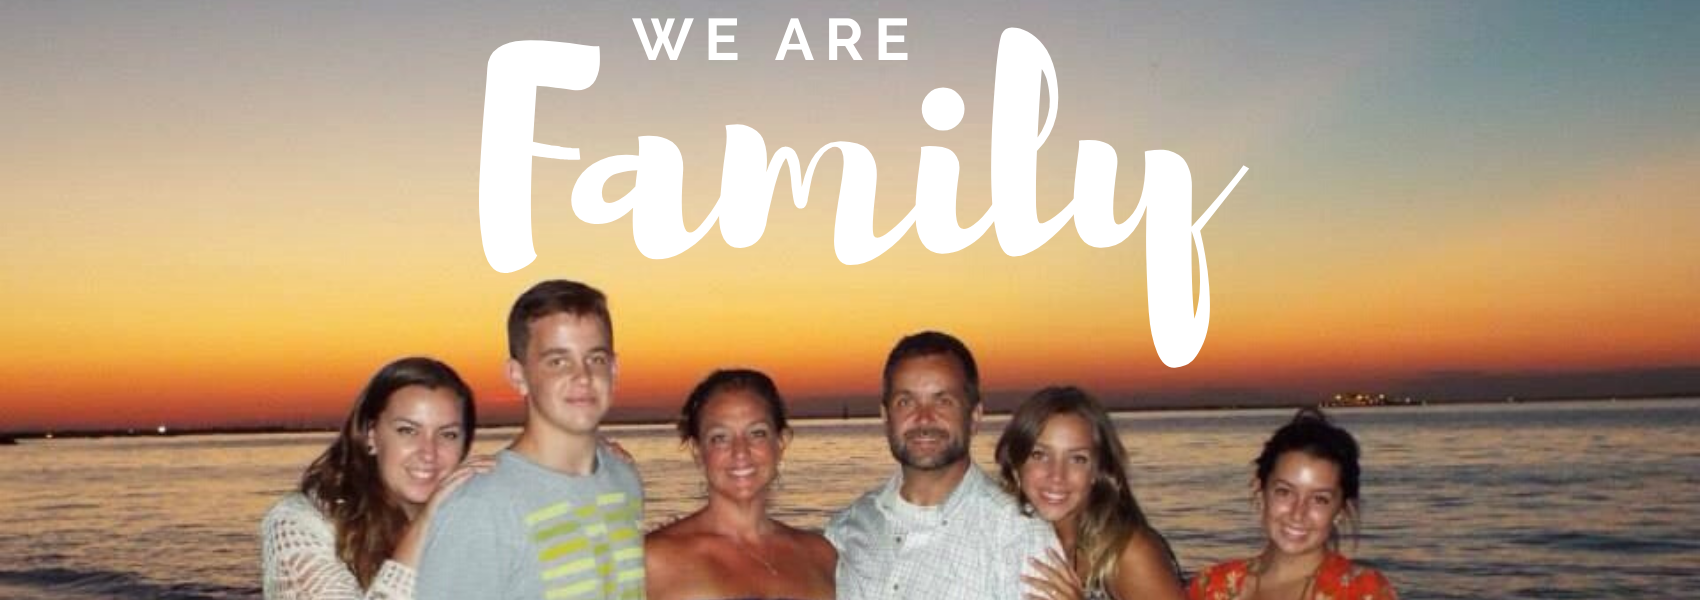 we-are-famiglia.png